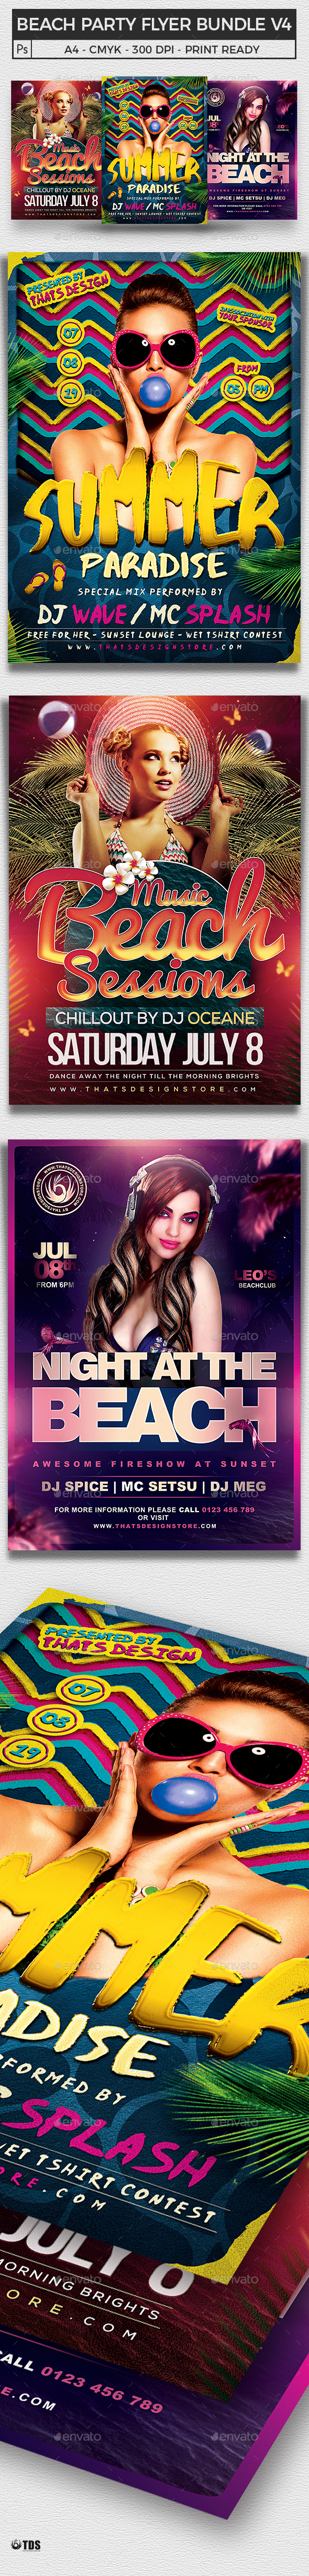 Beach Party Flyer Bundle V4 - Clubs & Parties Events